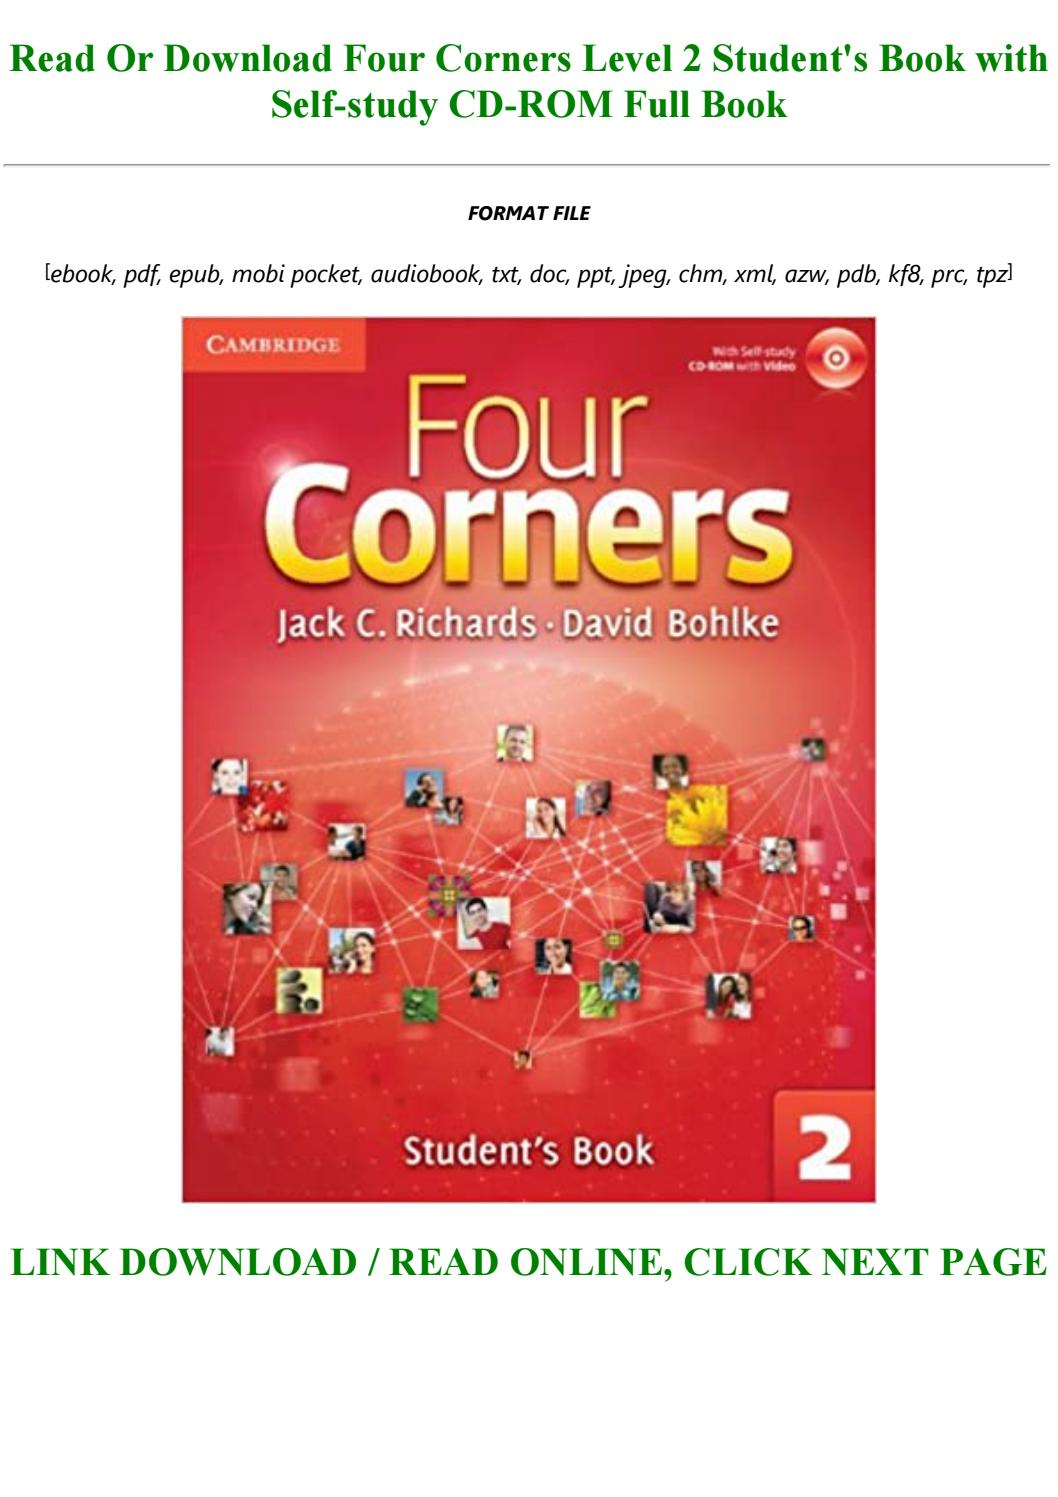 four corners level 2 students book pdf free download